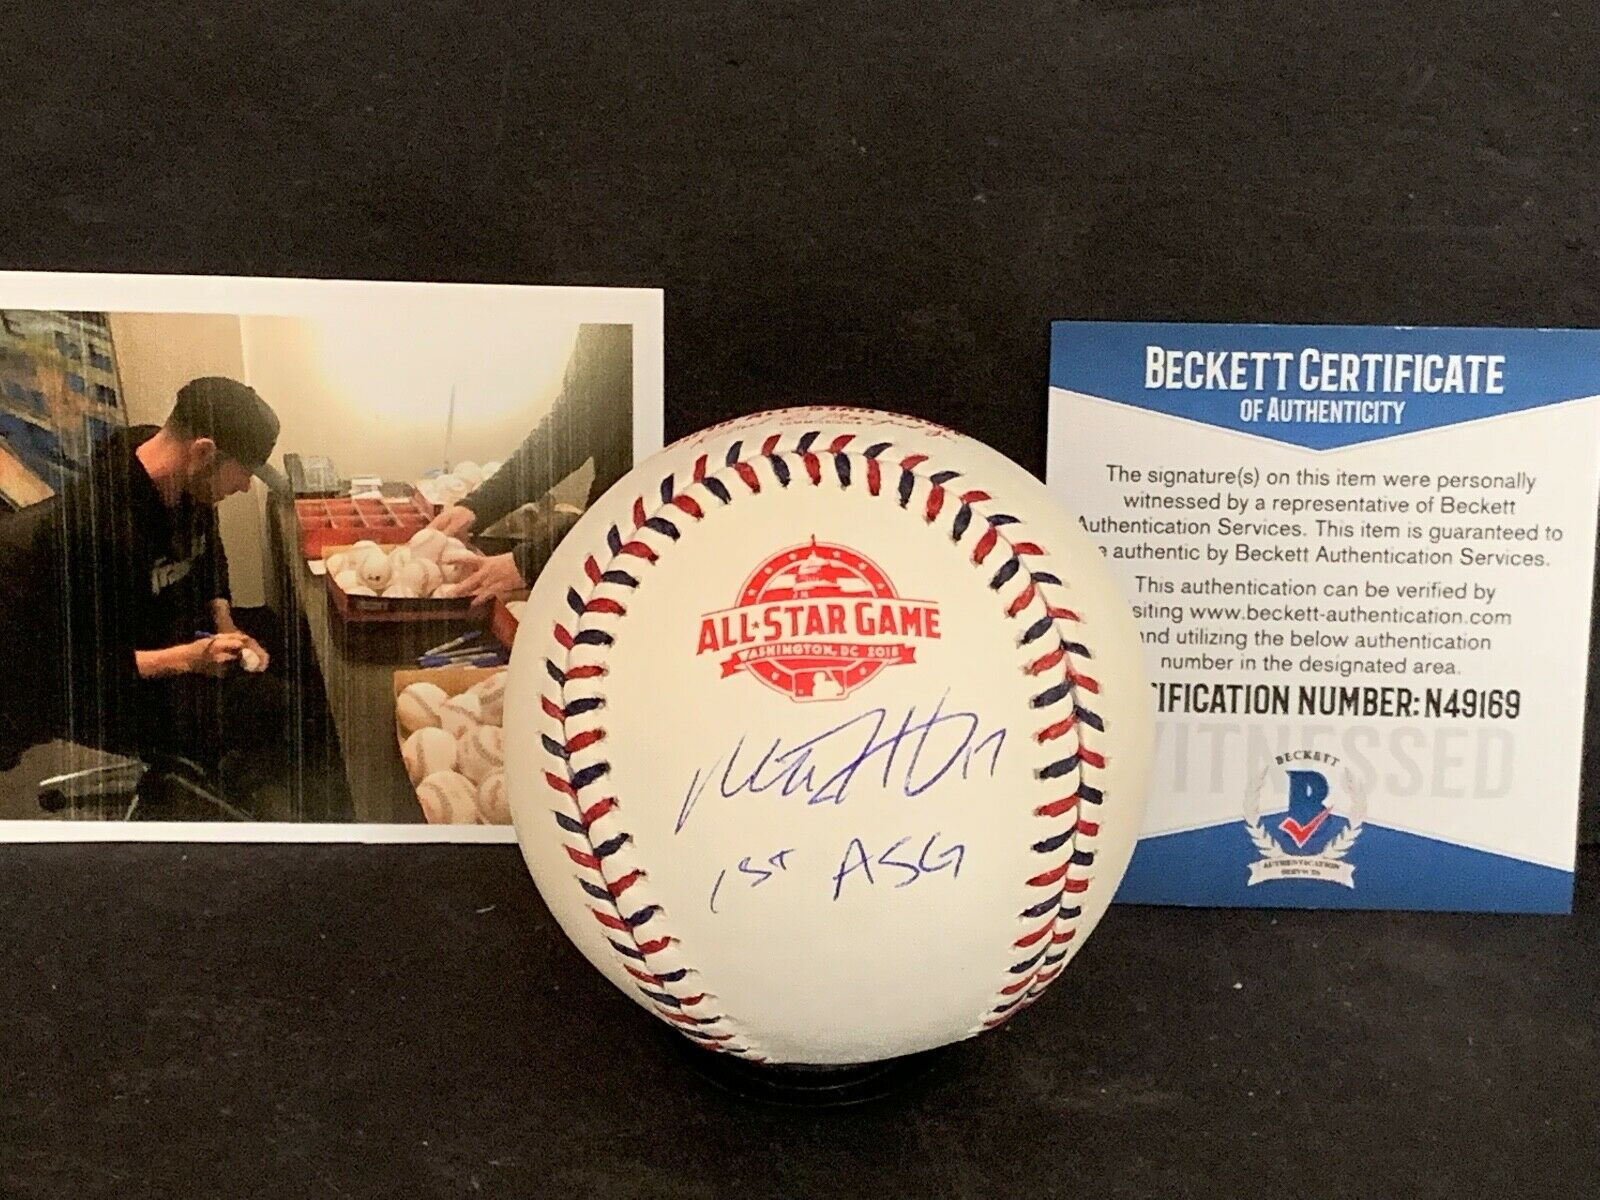 Mitch Haniger Mariners Signed 2018 All Star Baseball Beckett WITNESS 1st ASG